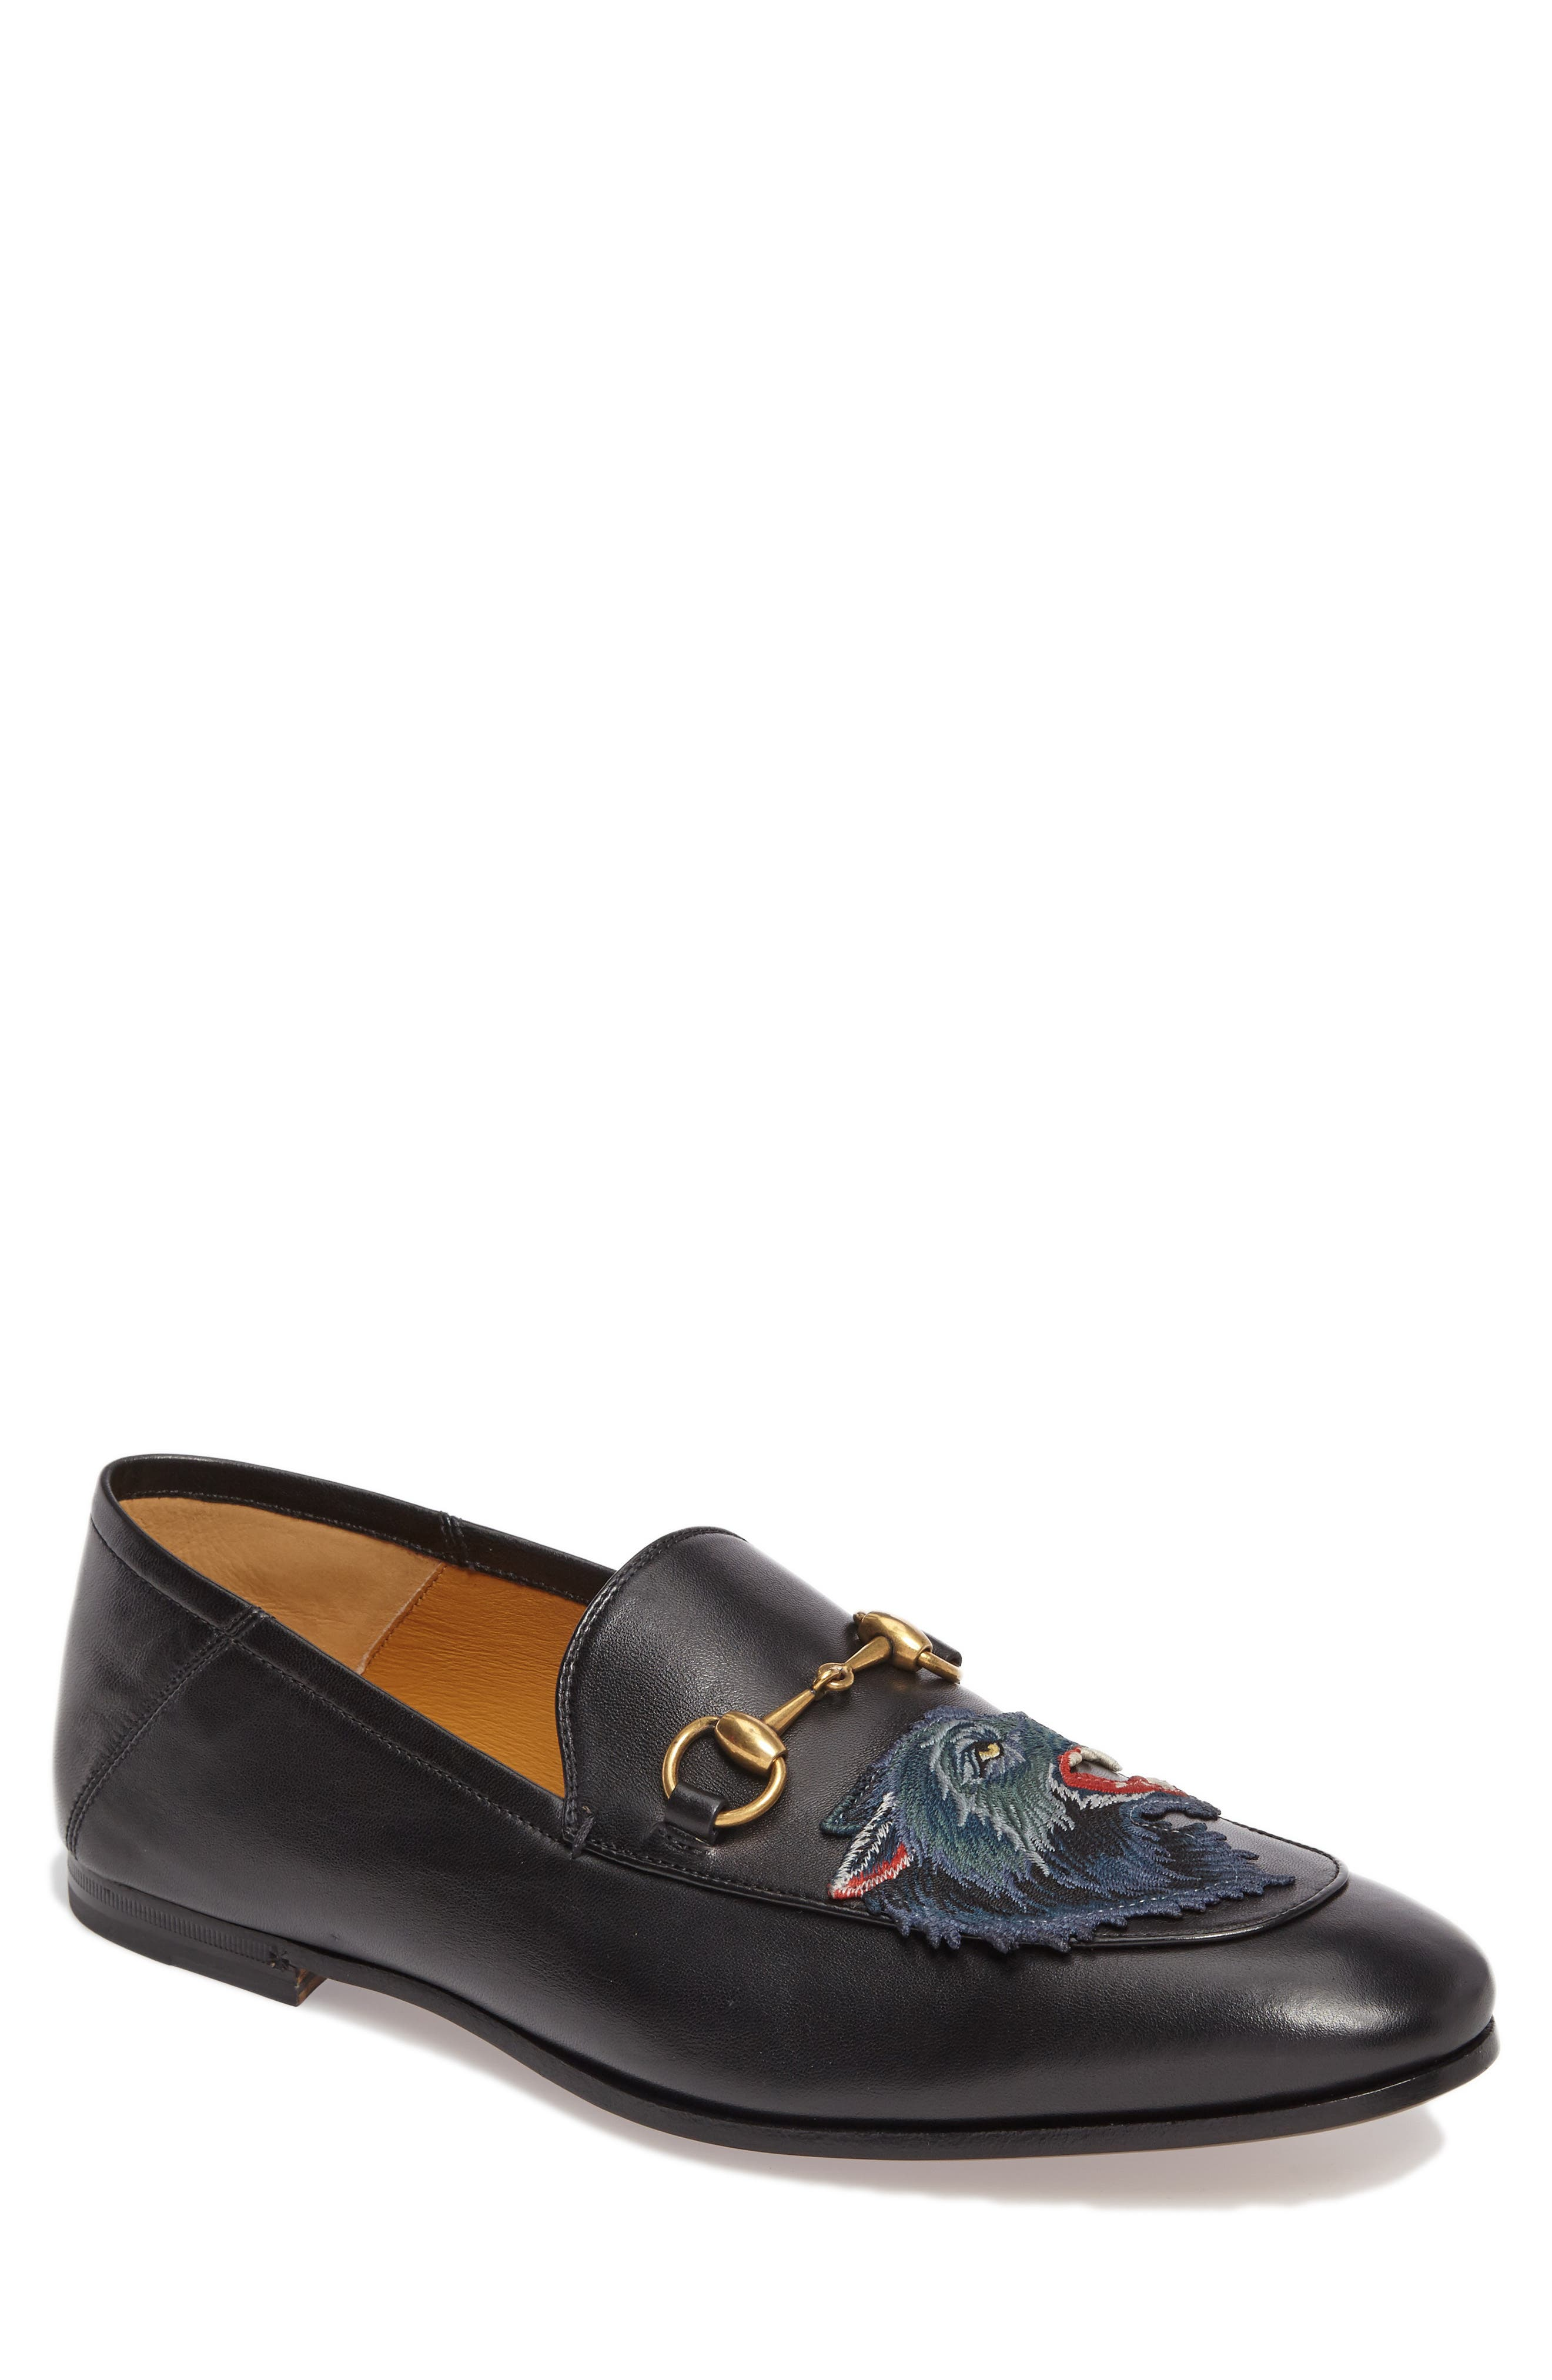 Gucci Brixton Angry Wolf Convertible Bit Loafer (Men)